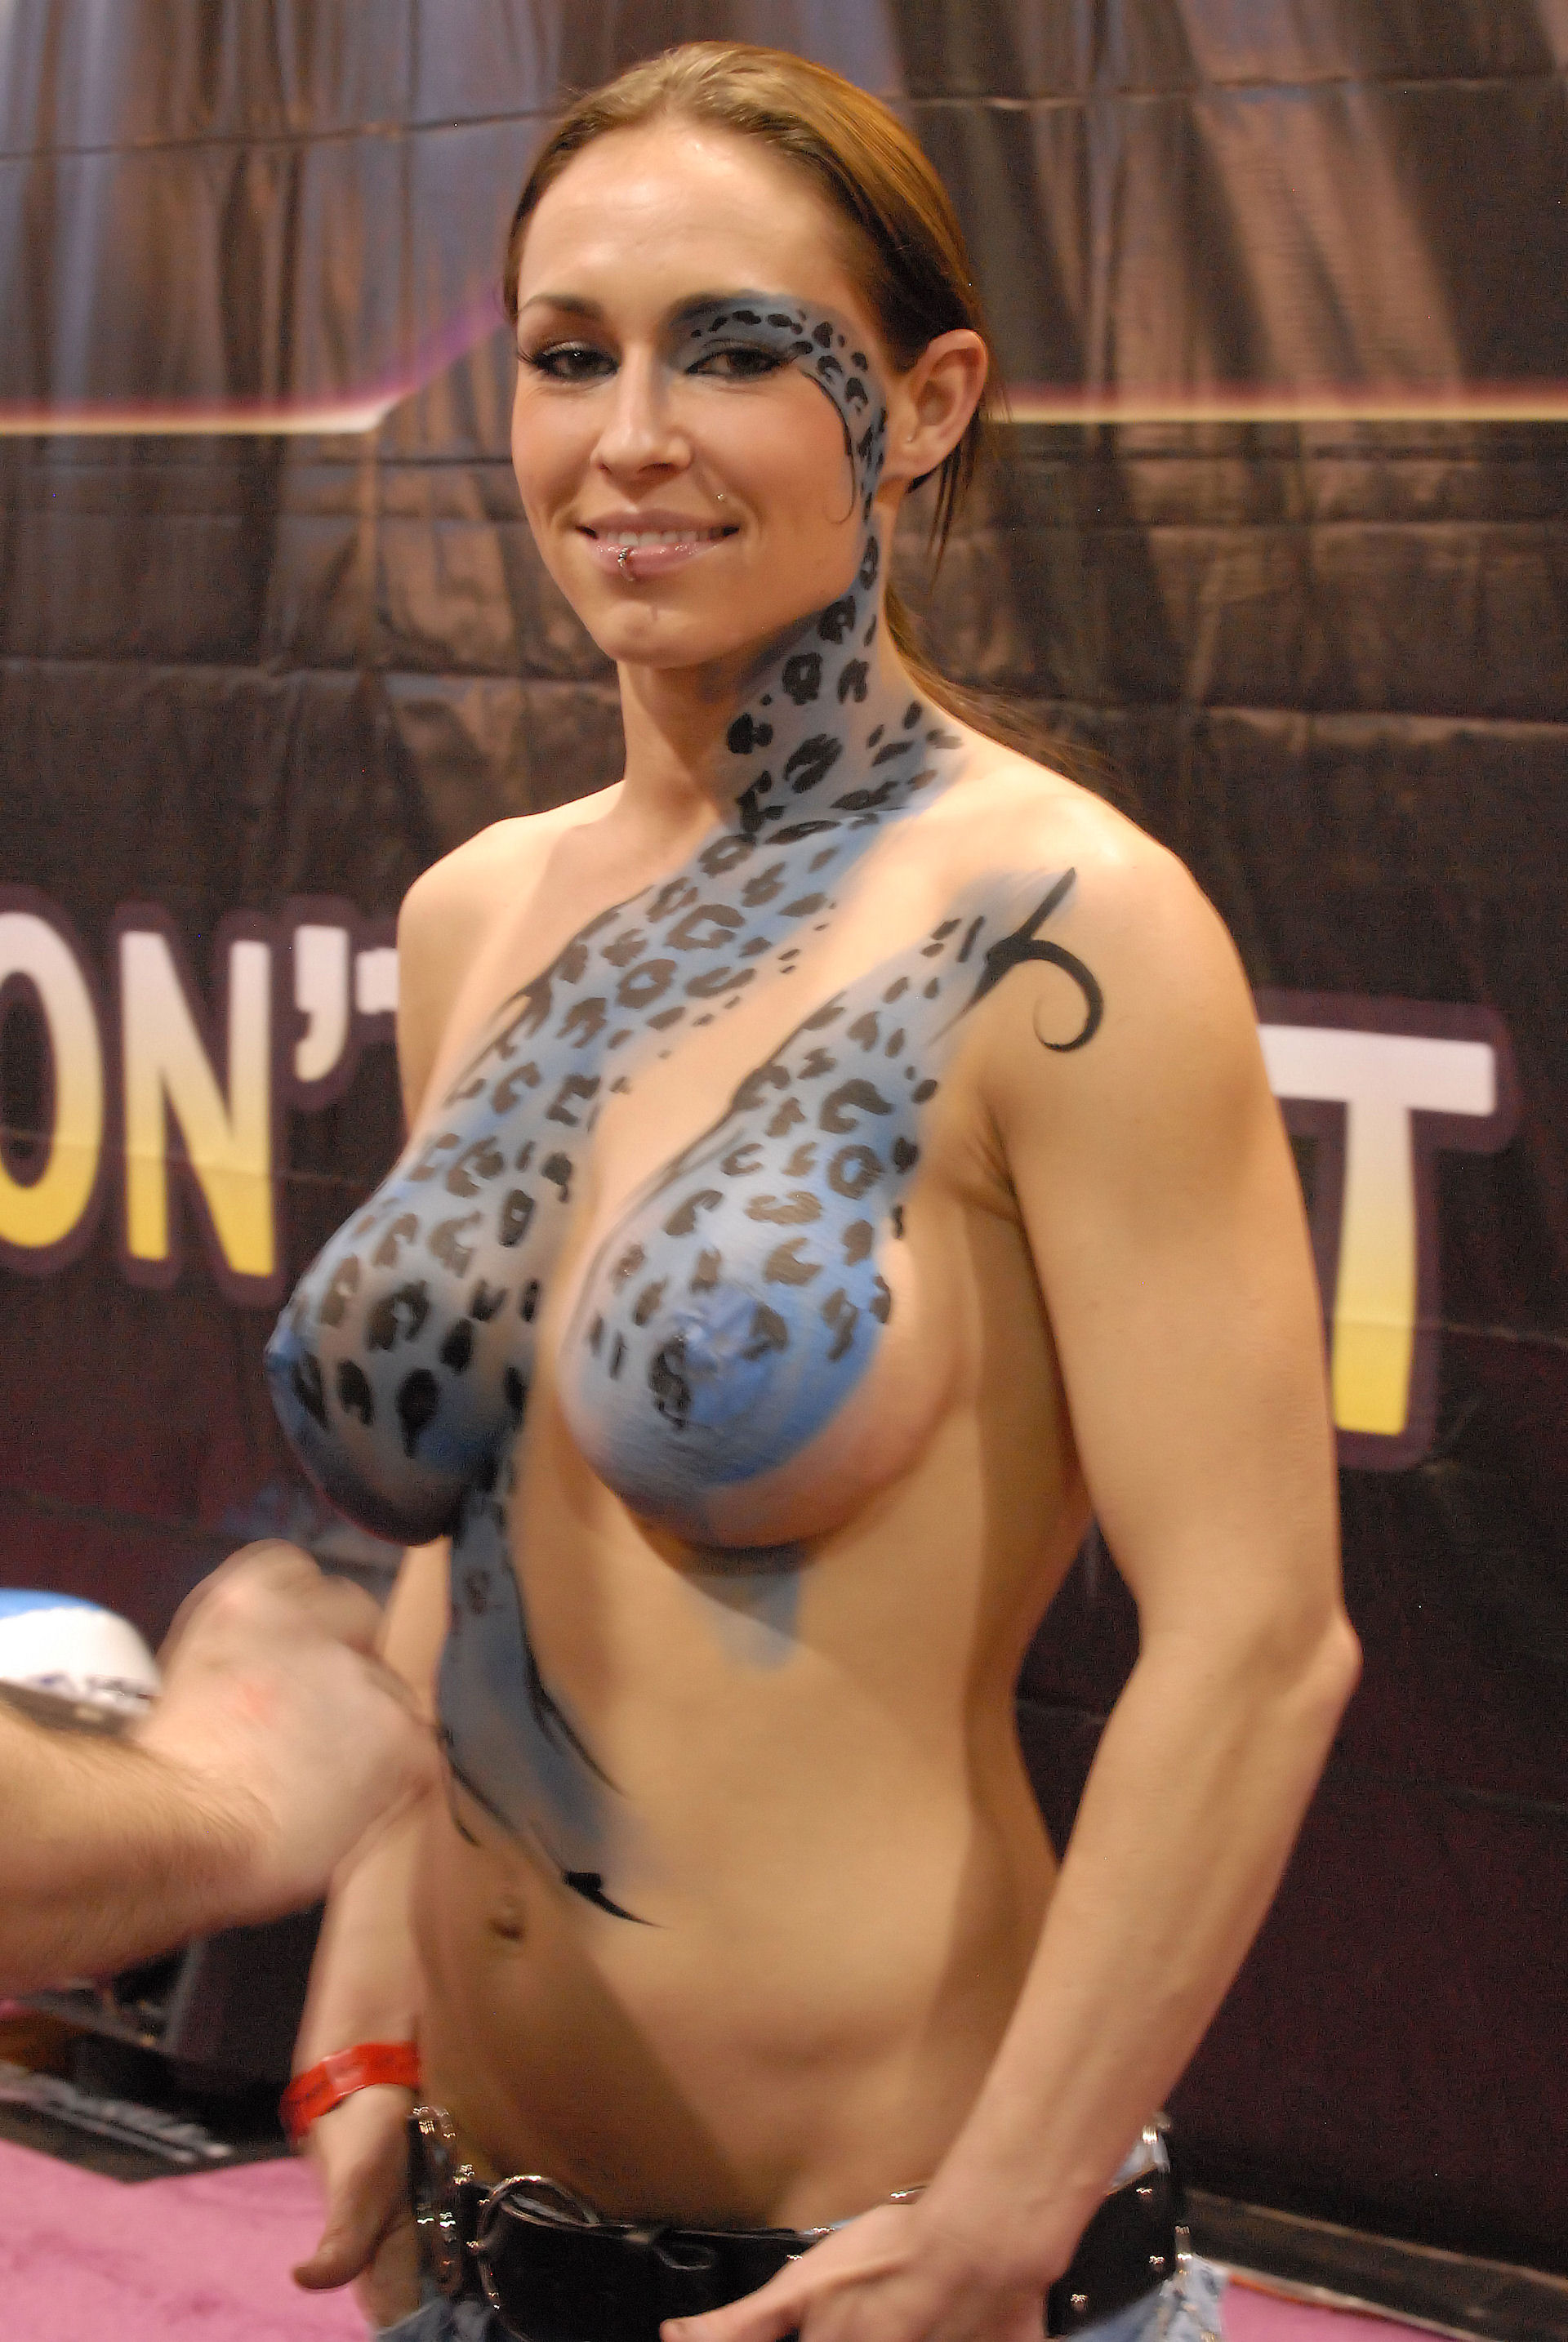 Avn adult entertainment expo nude